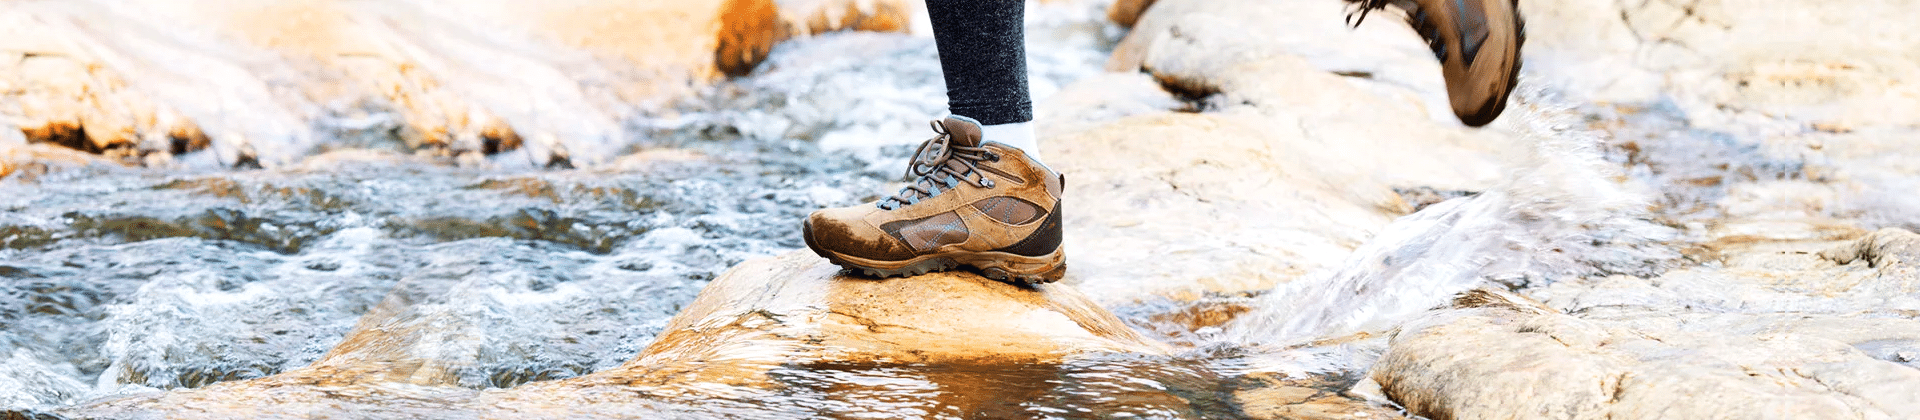 Best Water Shoes for Hiking Reviewed in Detail